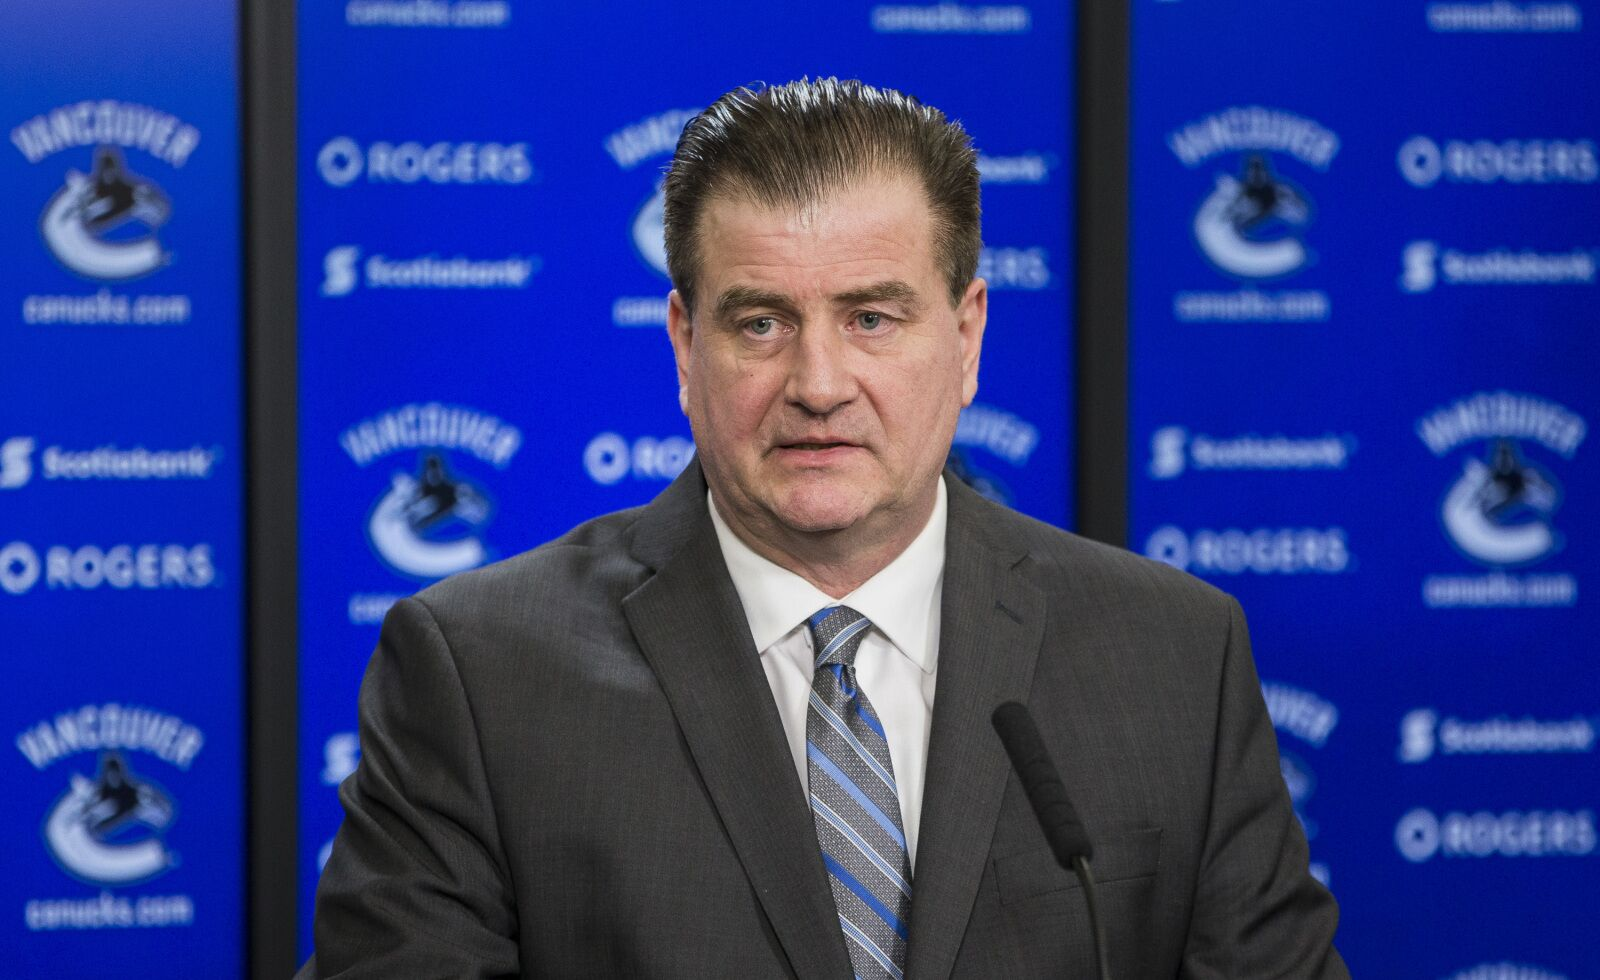 Vancouver Canucks: Can Jim Benning take the Canucks to the next level?